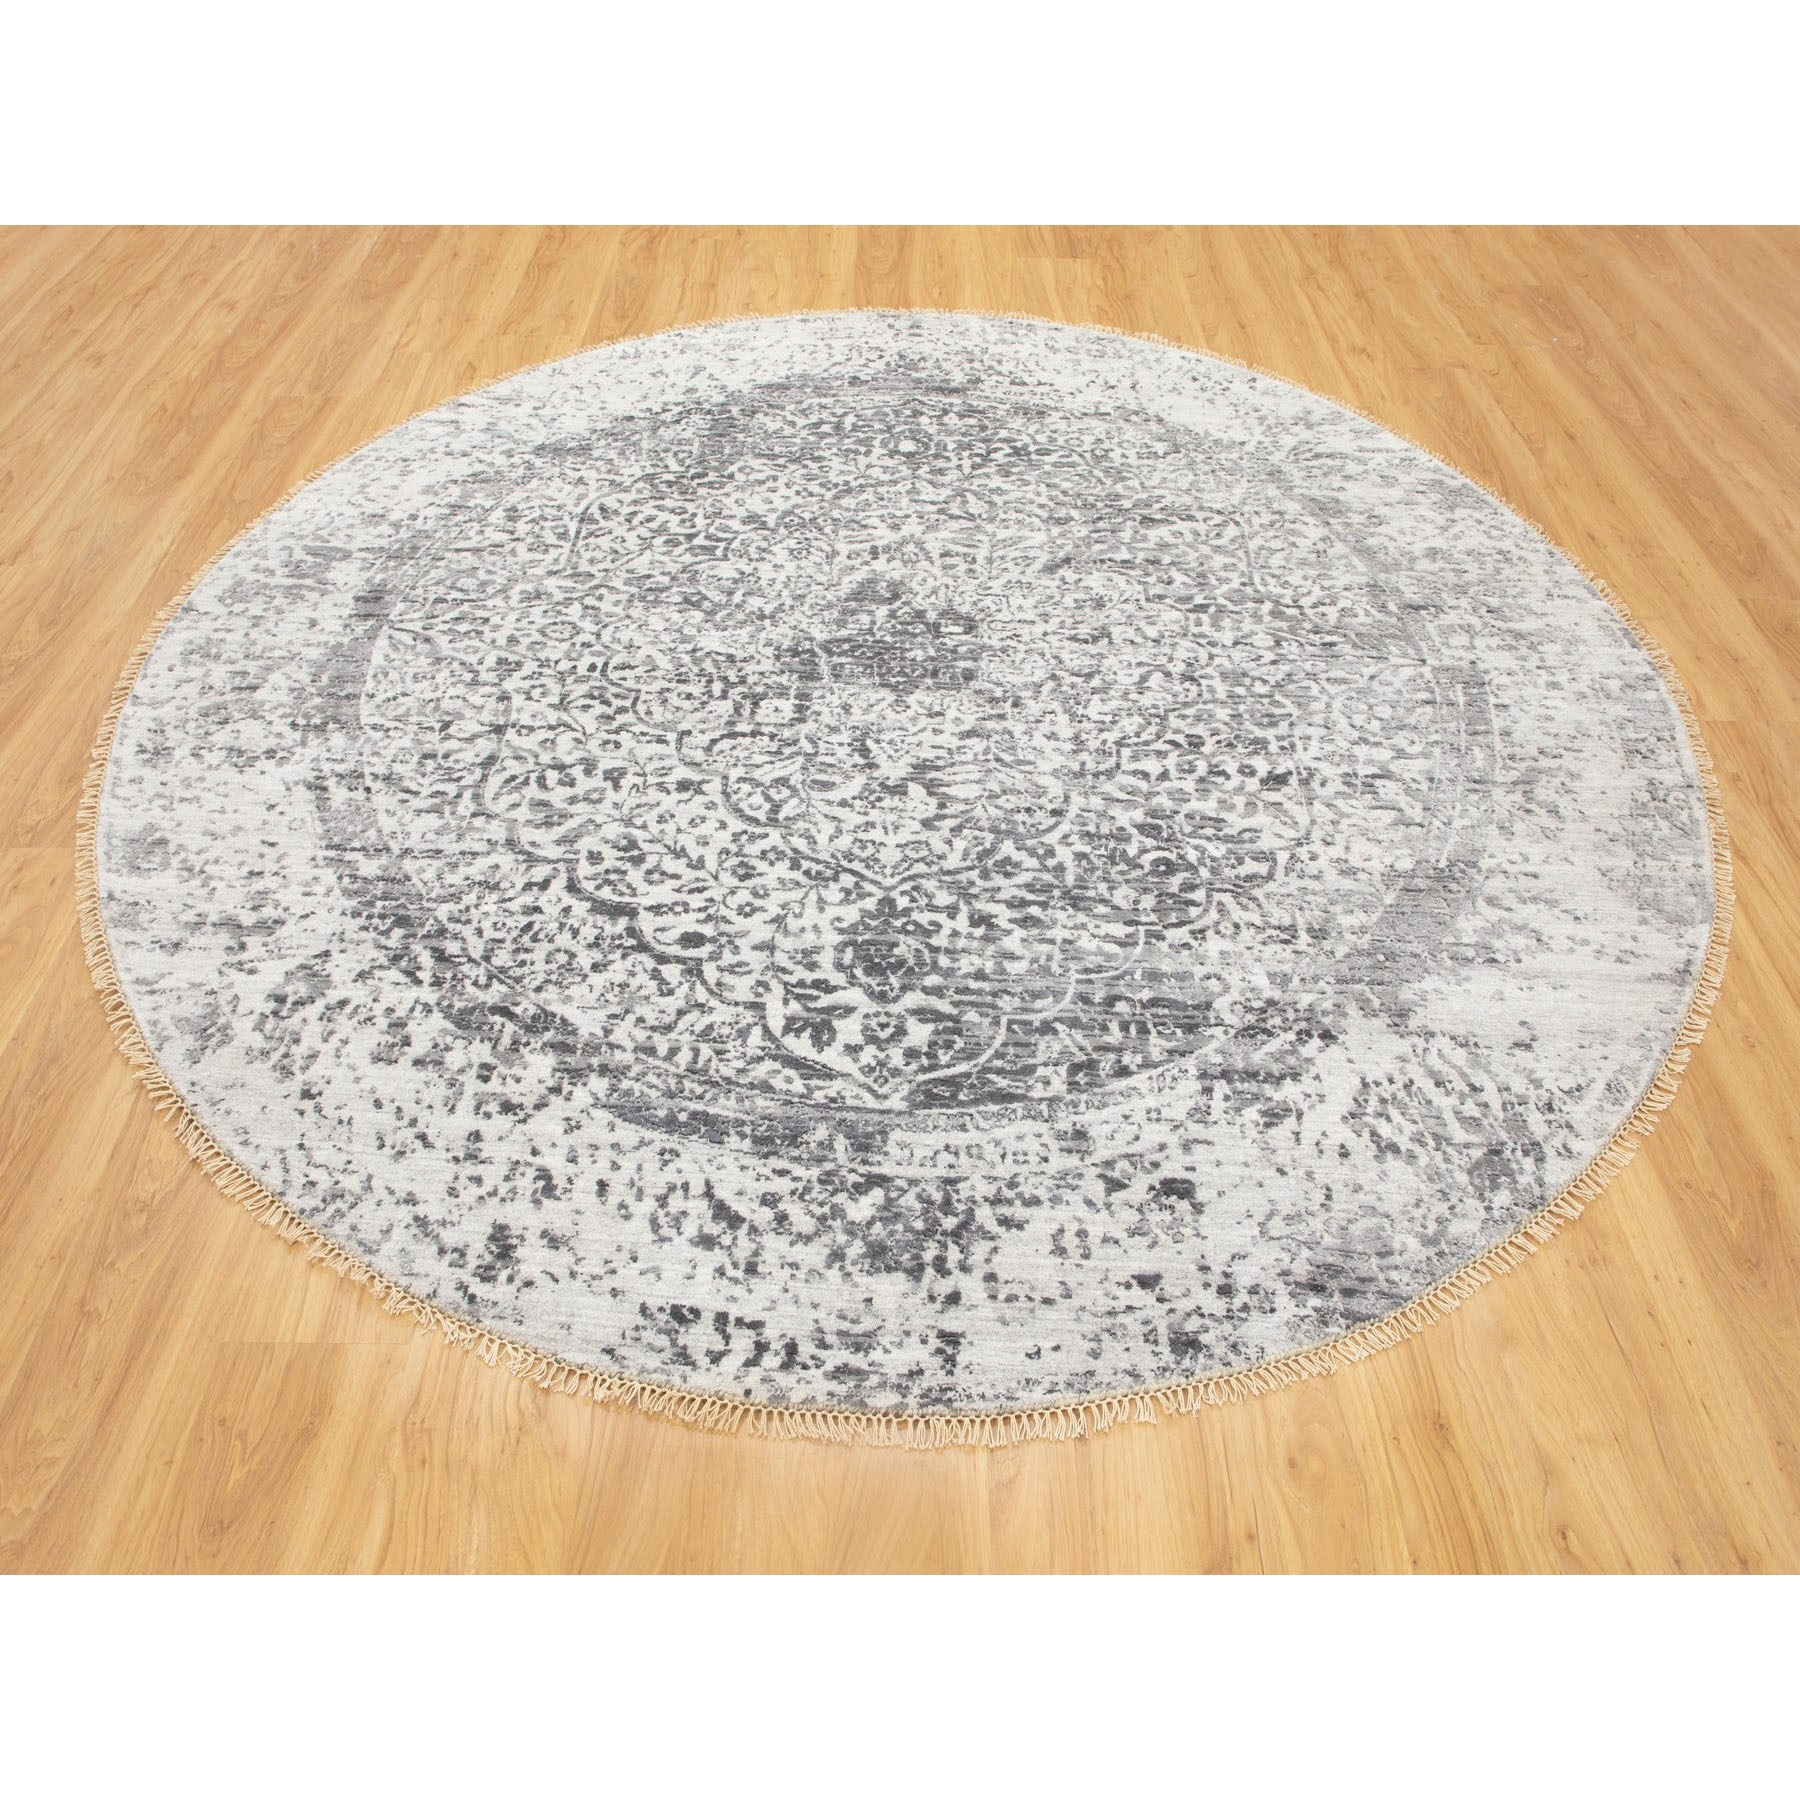 7'x7' Round Broken Persian Design Wool and Pure Silk Hand Knotted Oriental Rug